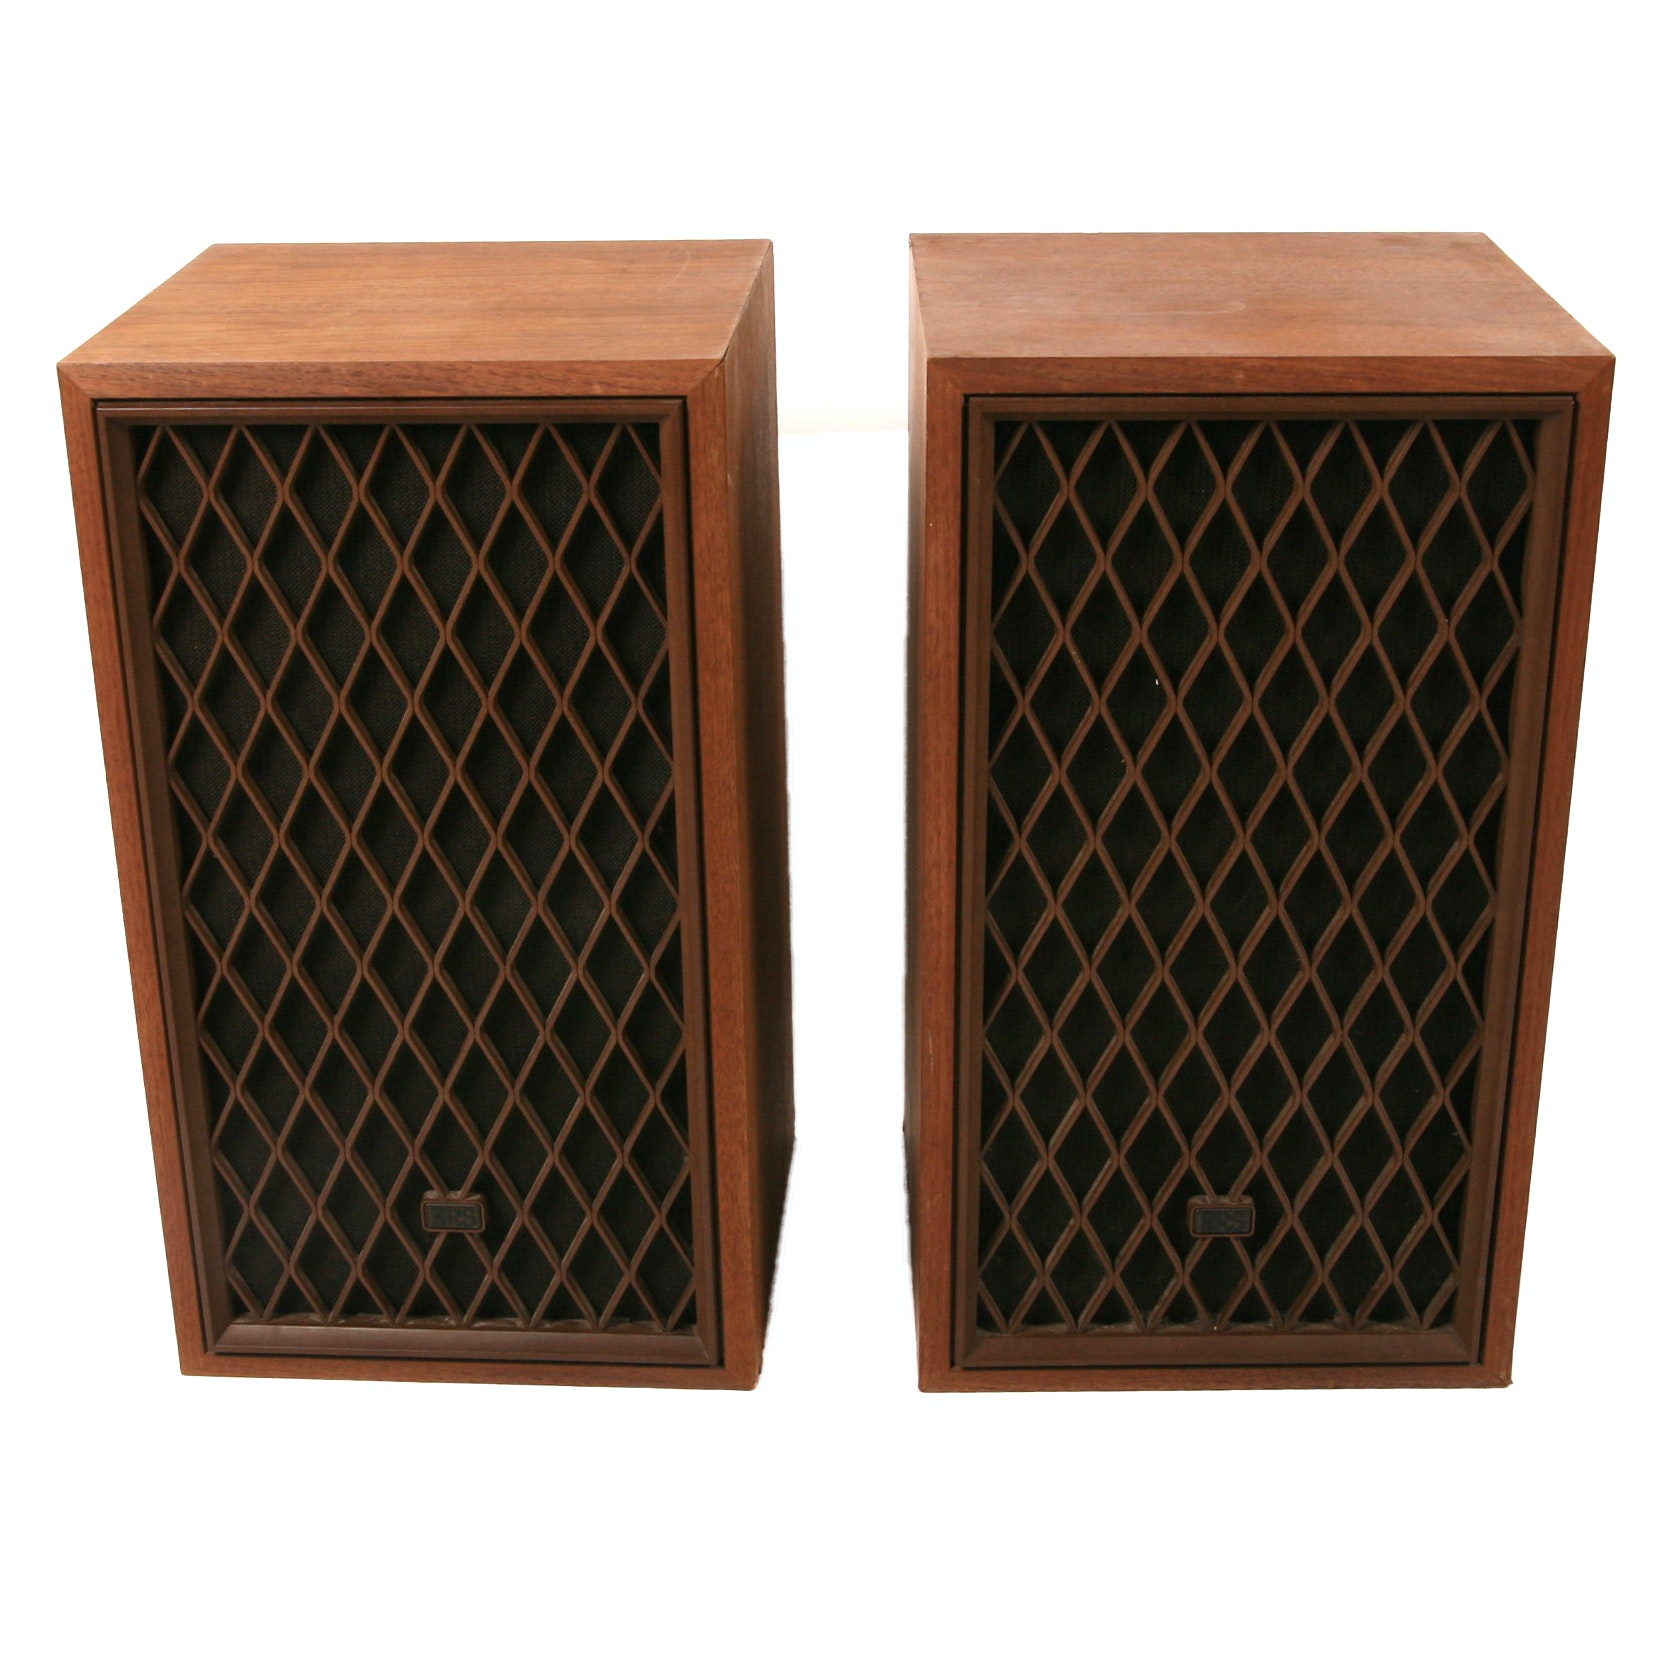 Vintage Radio Shack Loudspeakers